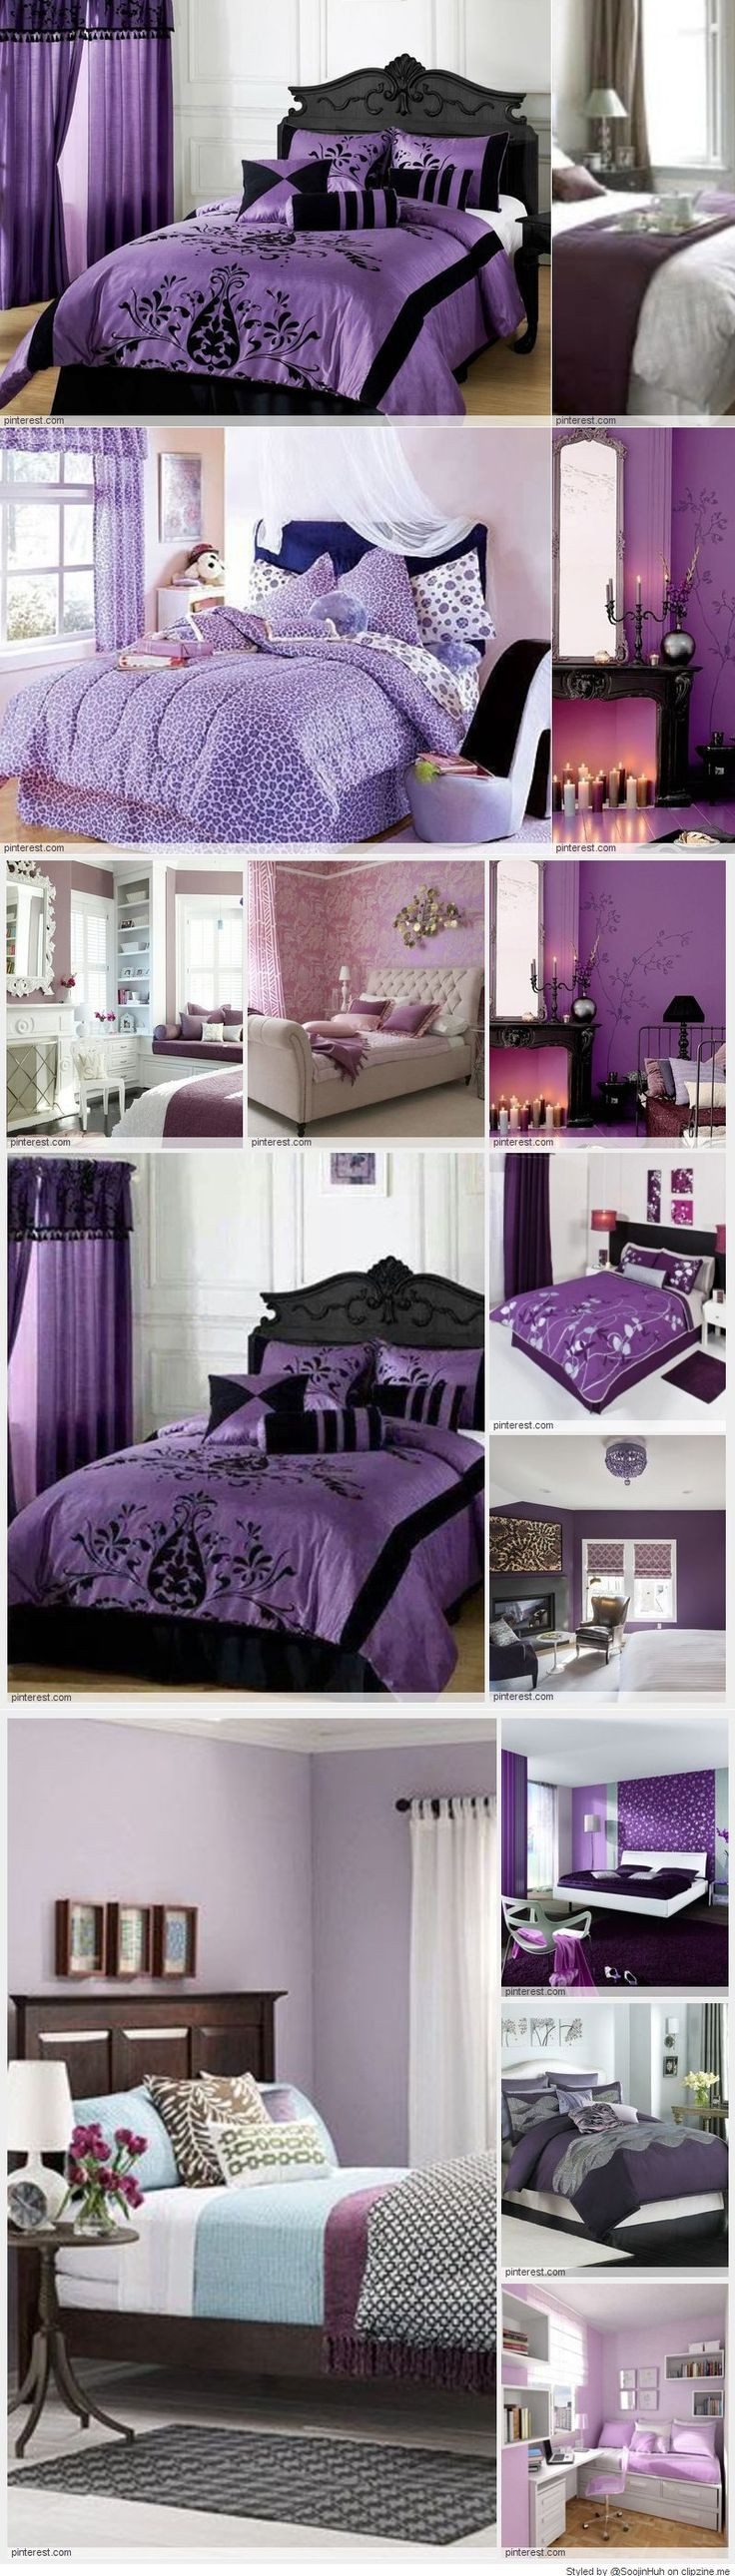 1000 Ideas About Purple Bedrooms On Pinterest Purple Bedroom Decor Purple Rooms And Purple